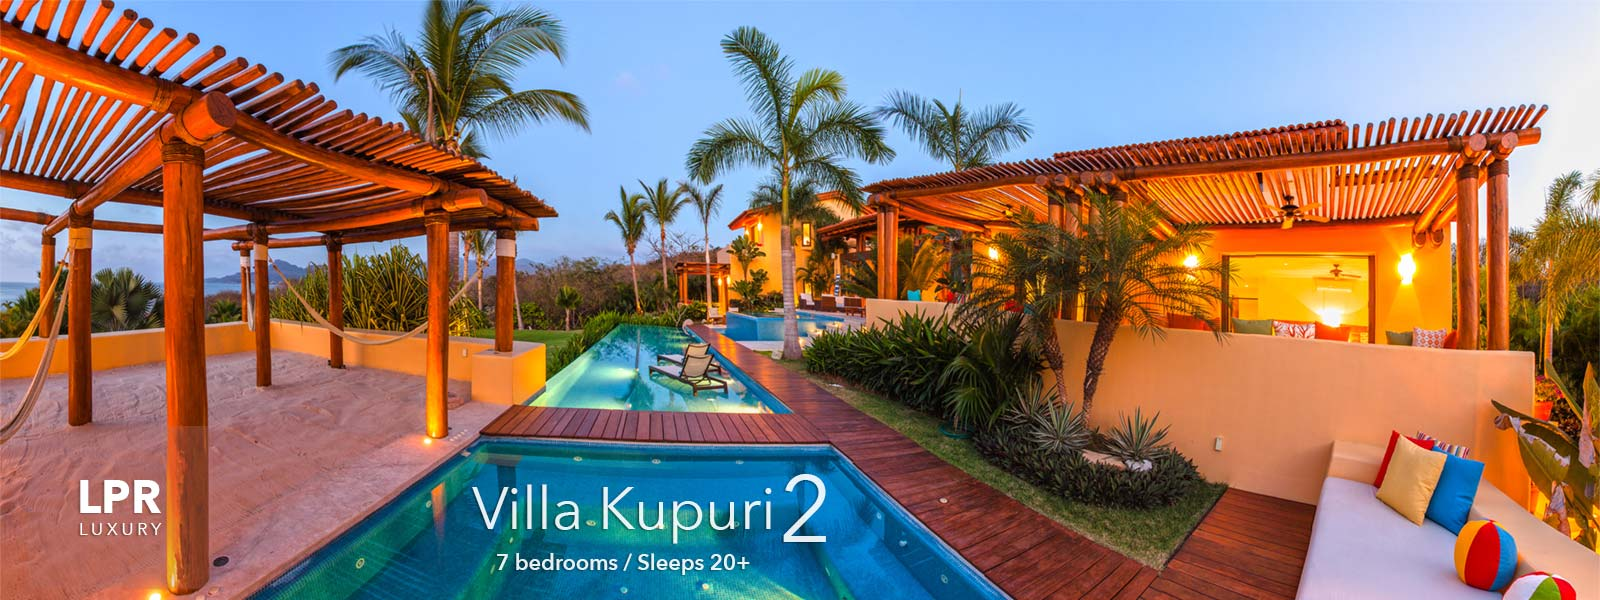 Villa Kupuri 2 - Punta Mita Resort - Mexico Luxury Vacation Rentals and Resort Real Estate